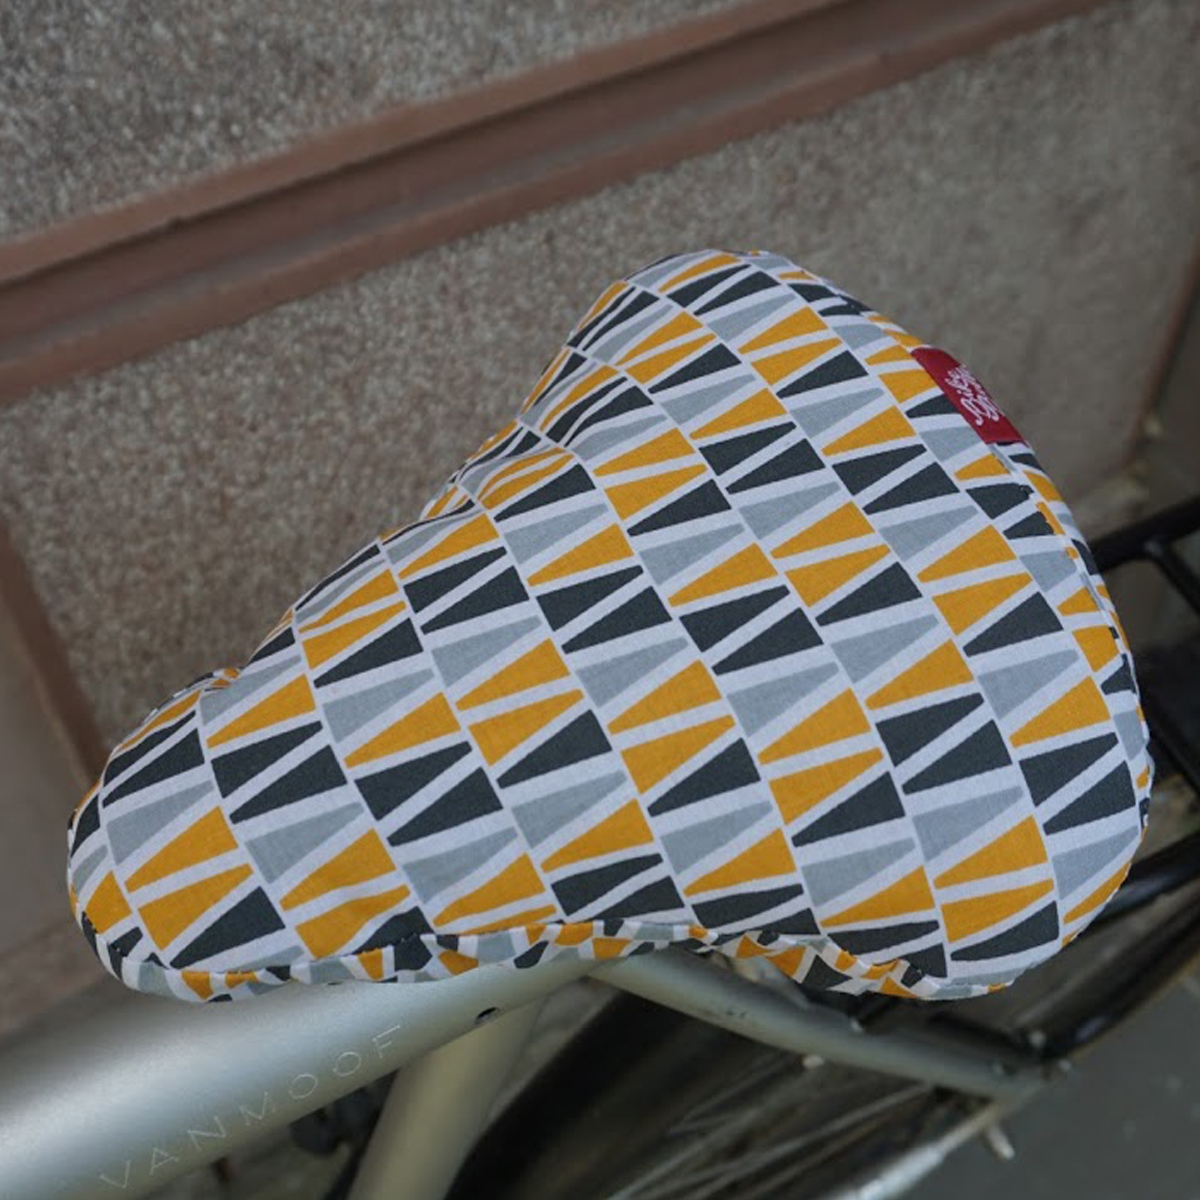 reversible-and-rainproof-seat-cover-barbican-2w1-bike-belle